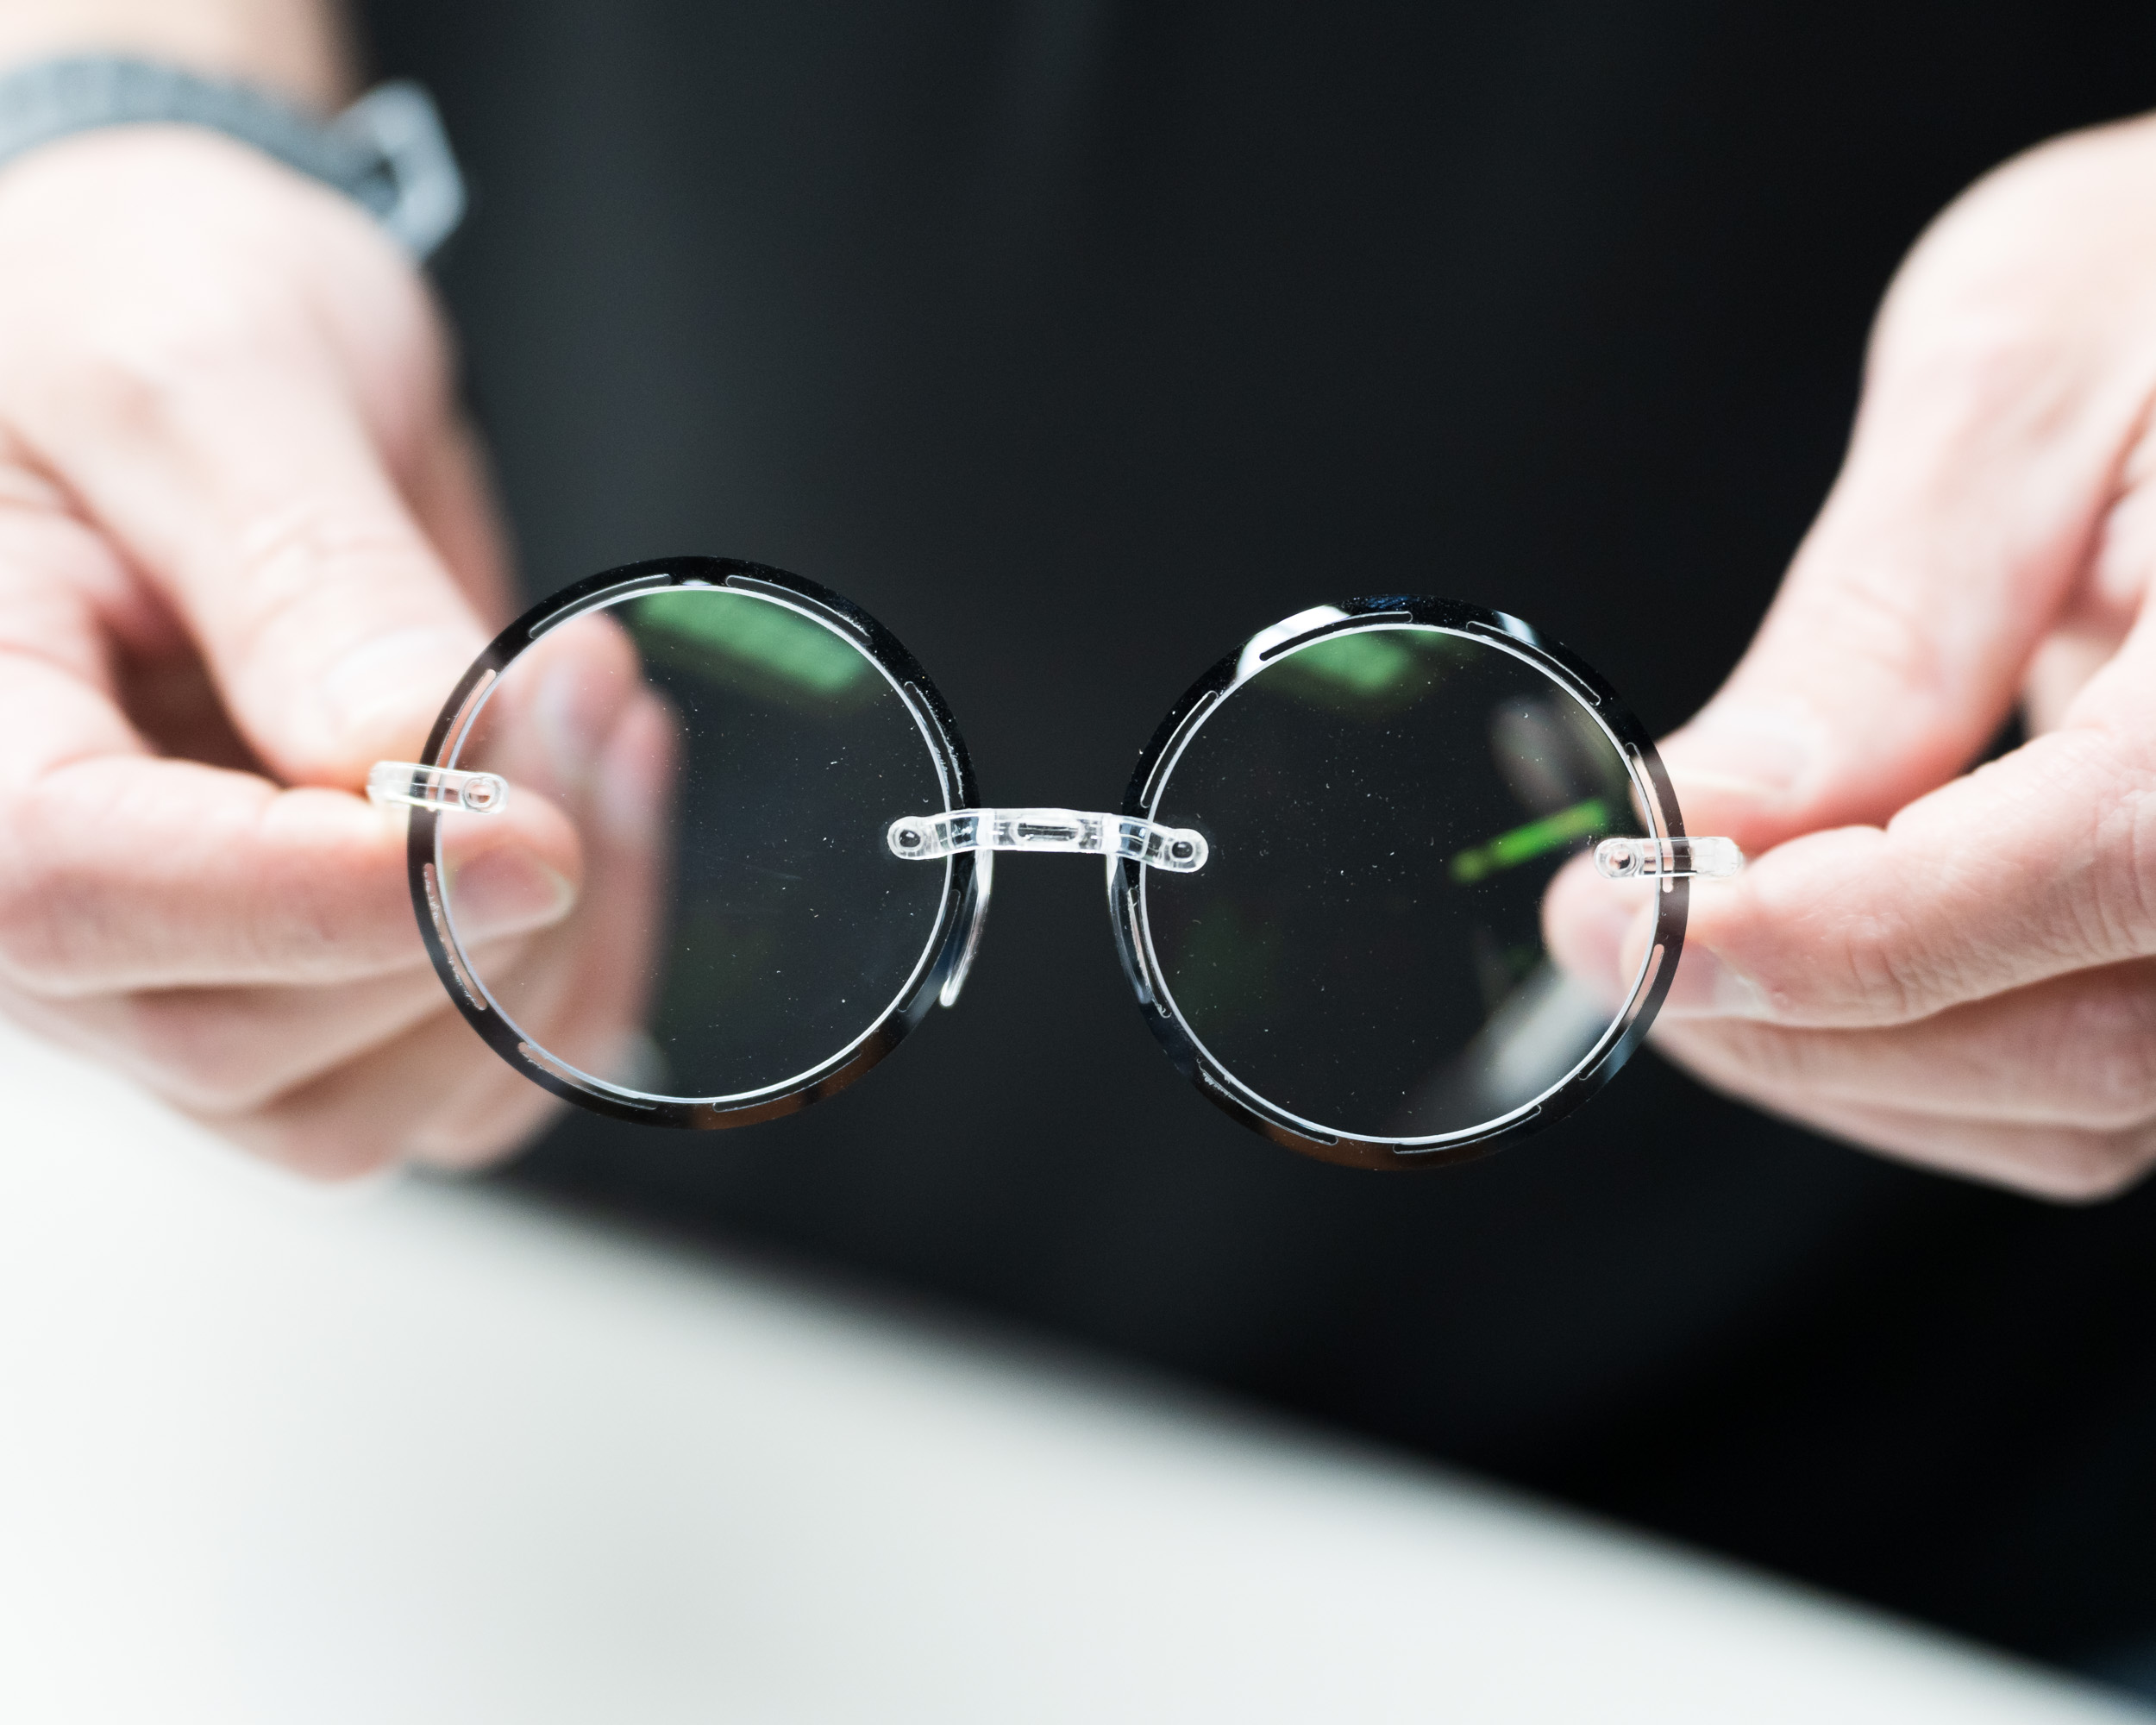 A person holding a pair of glasses